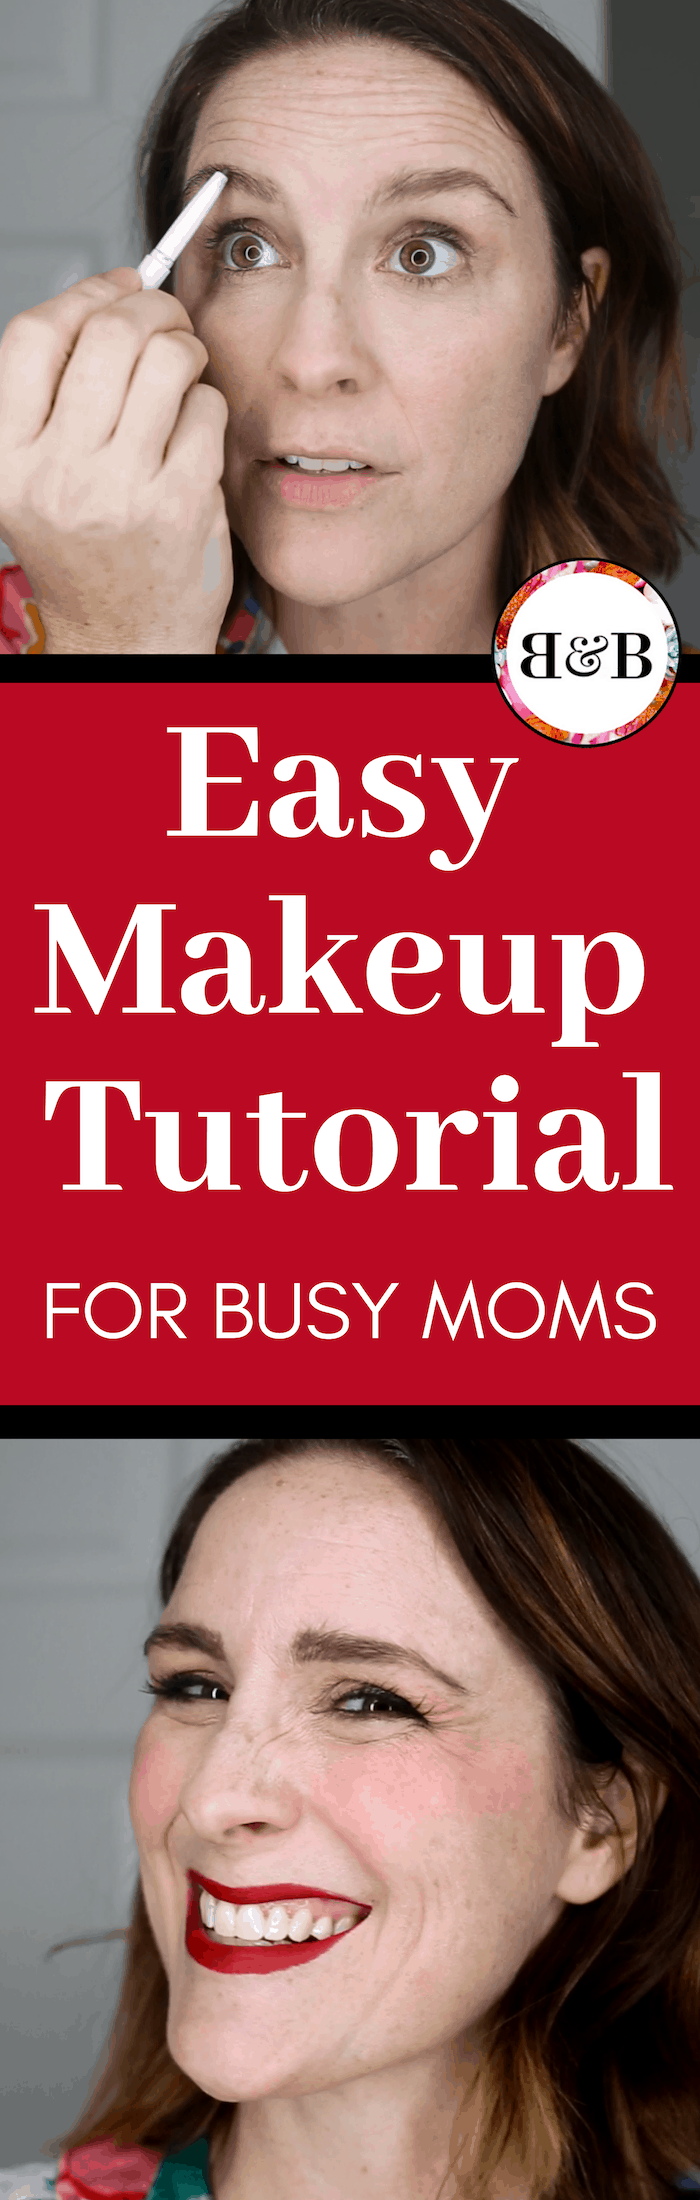 Slapping on makeup in the morning can be a simple and easy way to give yourself a mood and confidence boost! But what if you have no idea what you're doing? Check out my video for an easy makeup tutorial that takes 5 minutes or less.